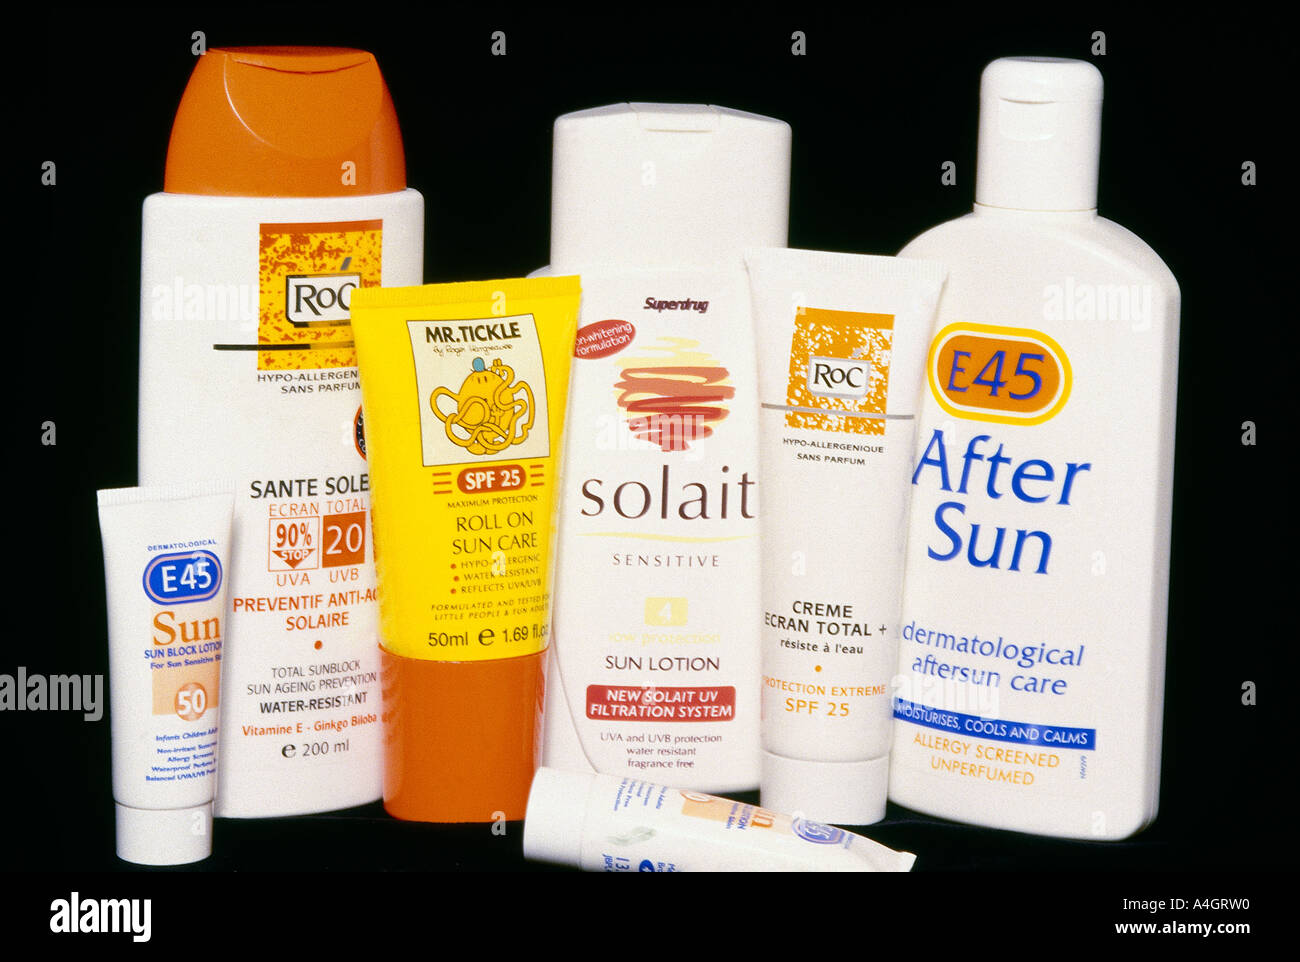 A photograph showing sun protection and after sun creams. - Stock Image